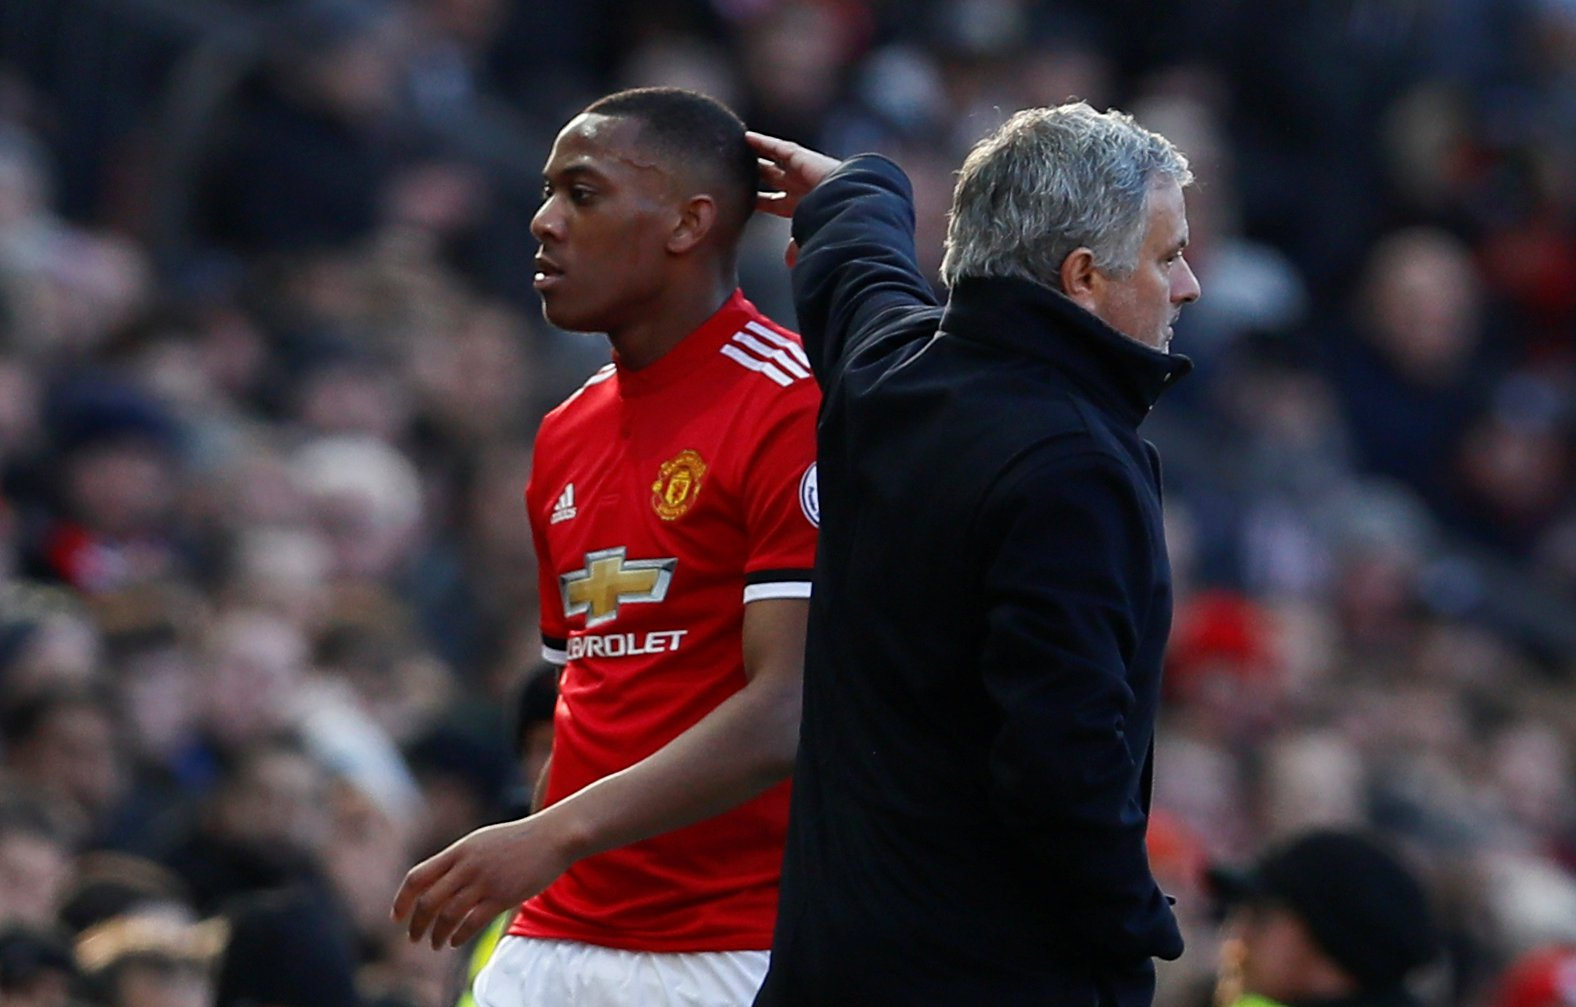 "Soccer Football - Premier League - Manchester United vs Chelsea - Old Trafford, Manchester, Britain - February 25, 2018 Manchester United's Anthony Martial walks past manager Jose Mourinho as he is substituted Action Images via Reuters/Jason Cairnduff EDITORIAL USE ONLY. No use with unauthorized audio, video, data, fixture lists, club/league logos or ""live"" services. Online in-match use limited to 75 images, no video emulation. No use in betting, games or single club/league/player publications. Please contact your account representative for further details."